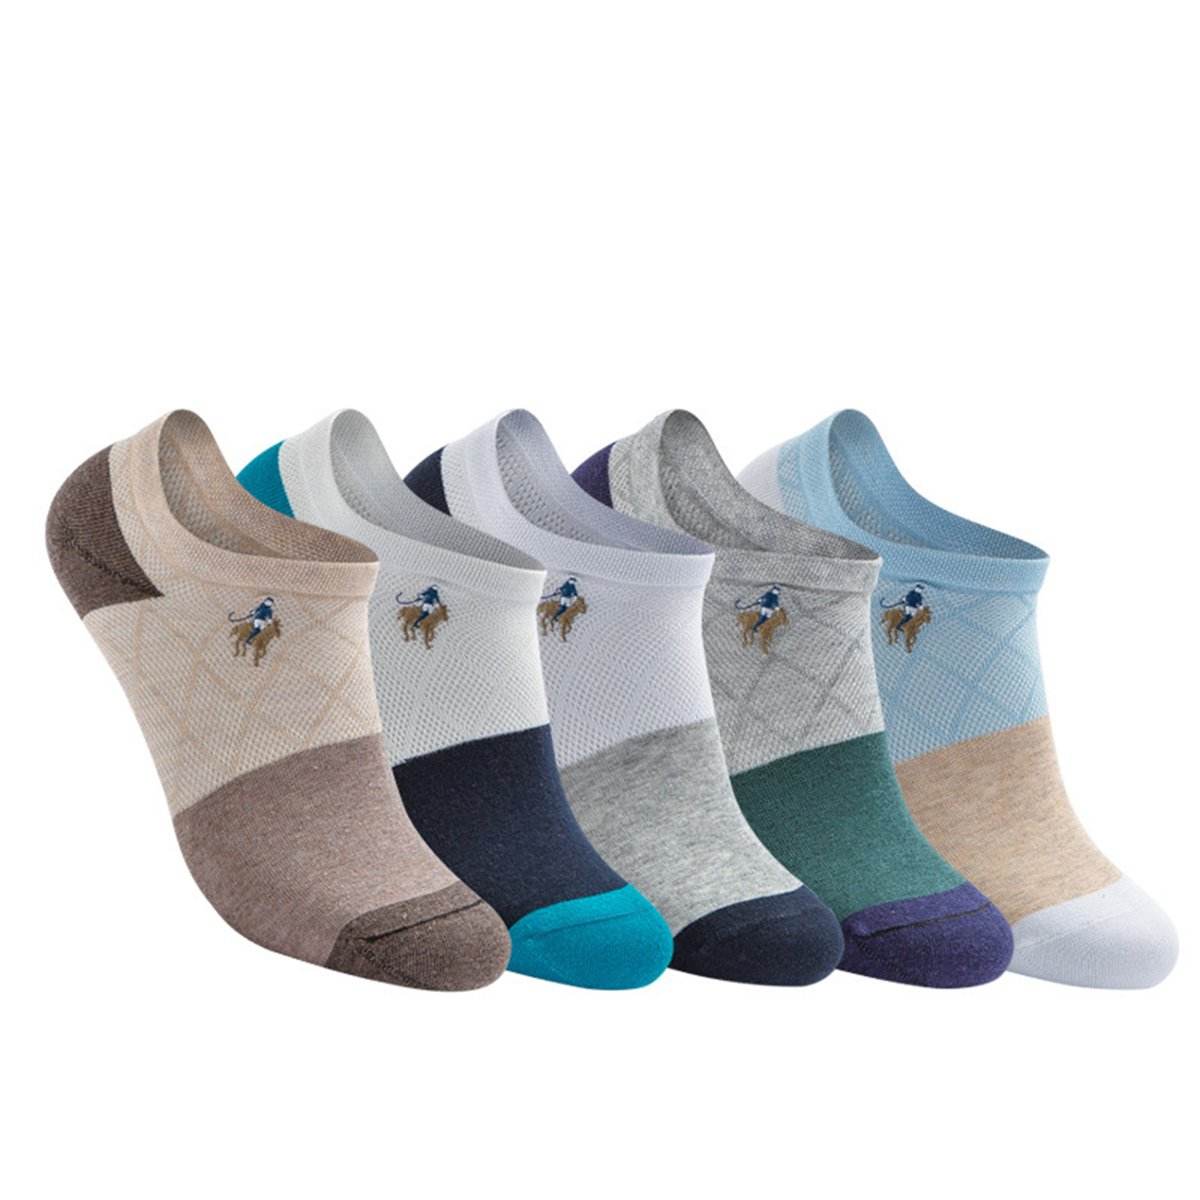 Spikerking Mens Embroidered Mesh Breathe Low Cut Silicone Thin Socks,5 Pack-5 Color